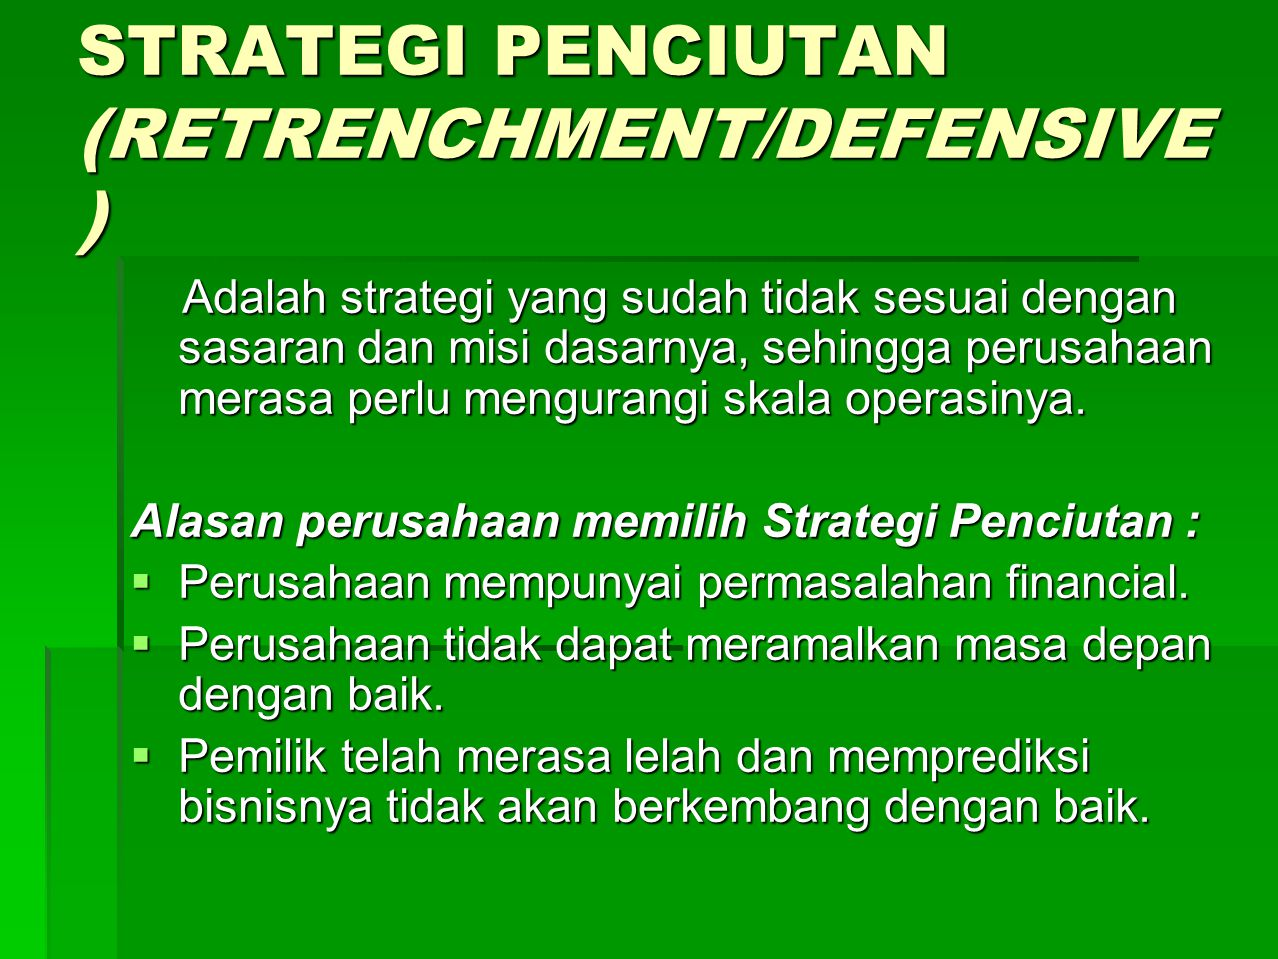 STRATEGI PENCIUTAN (RETRENCHMENT/DEFENSIVE)